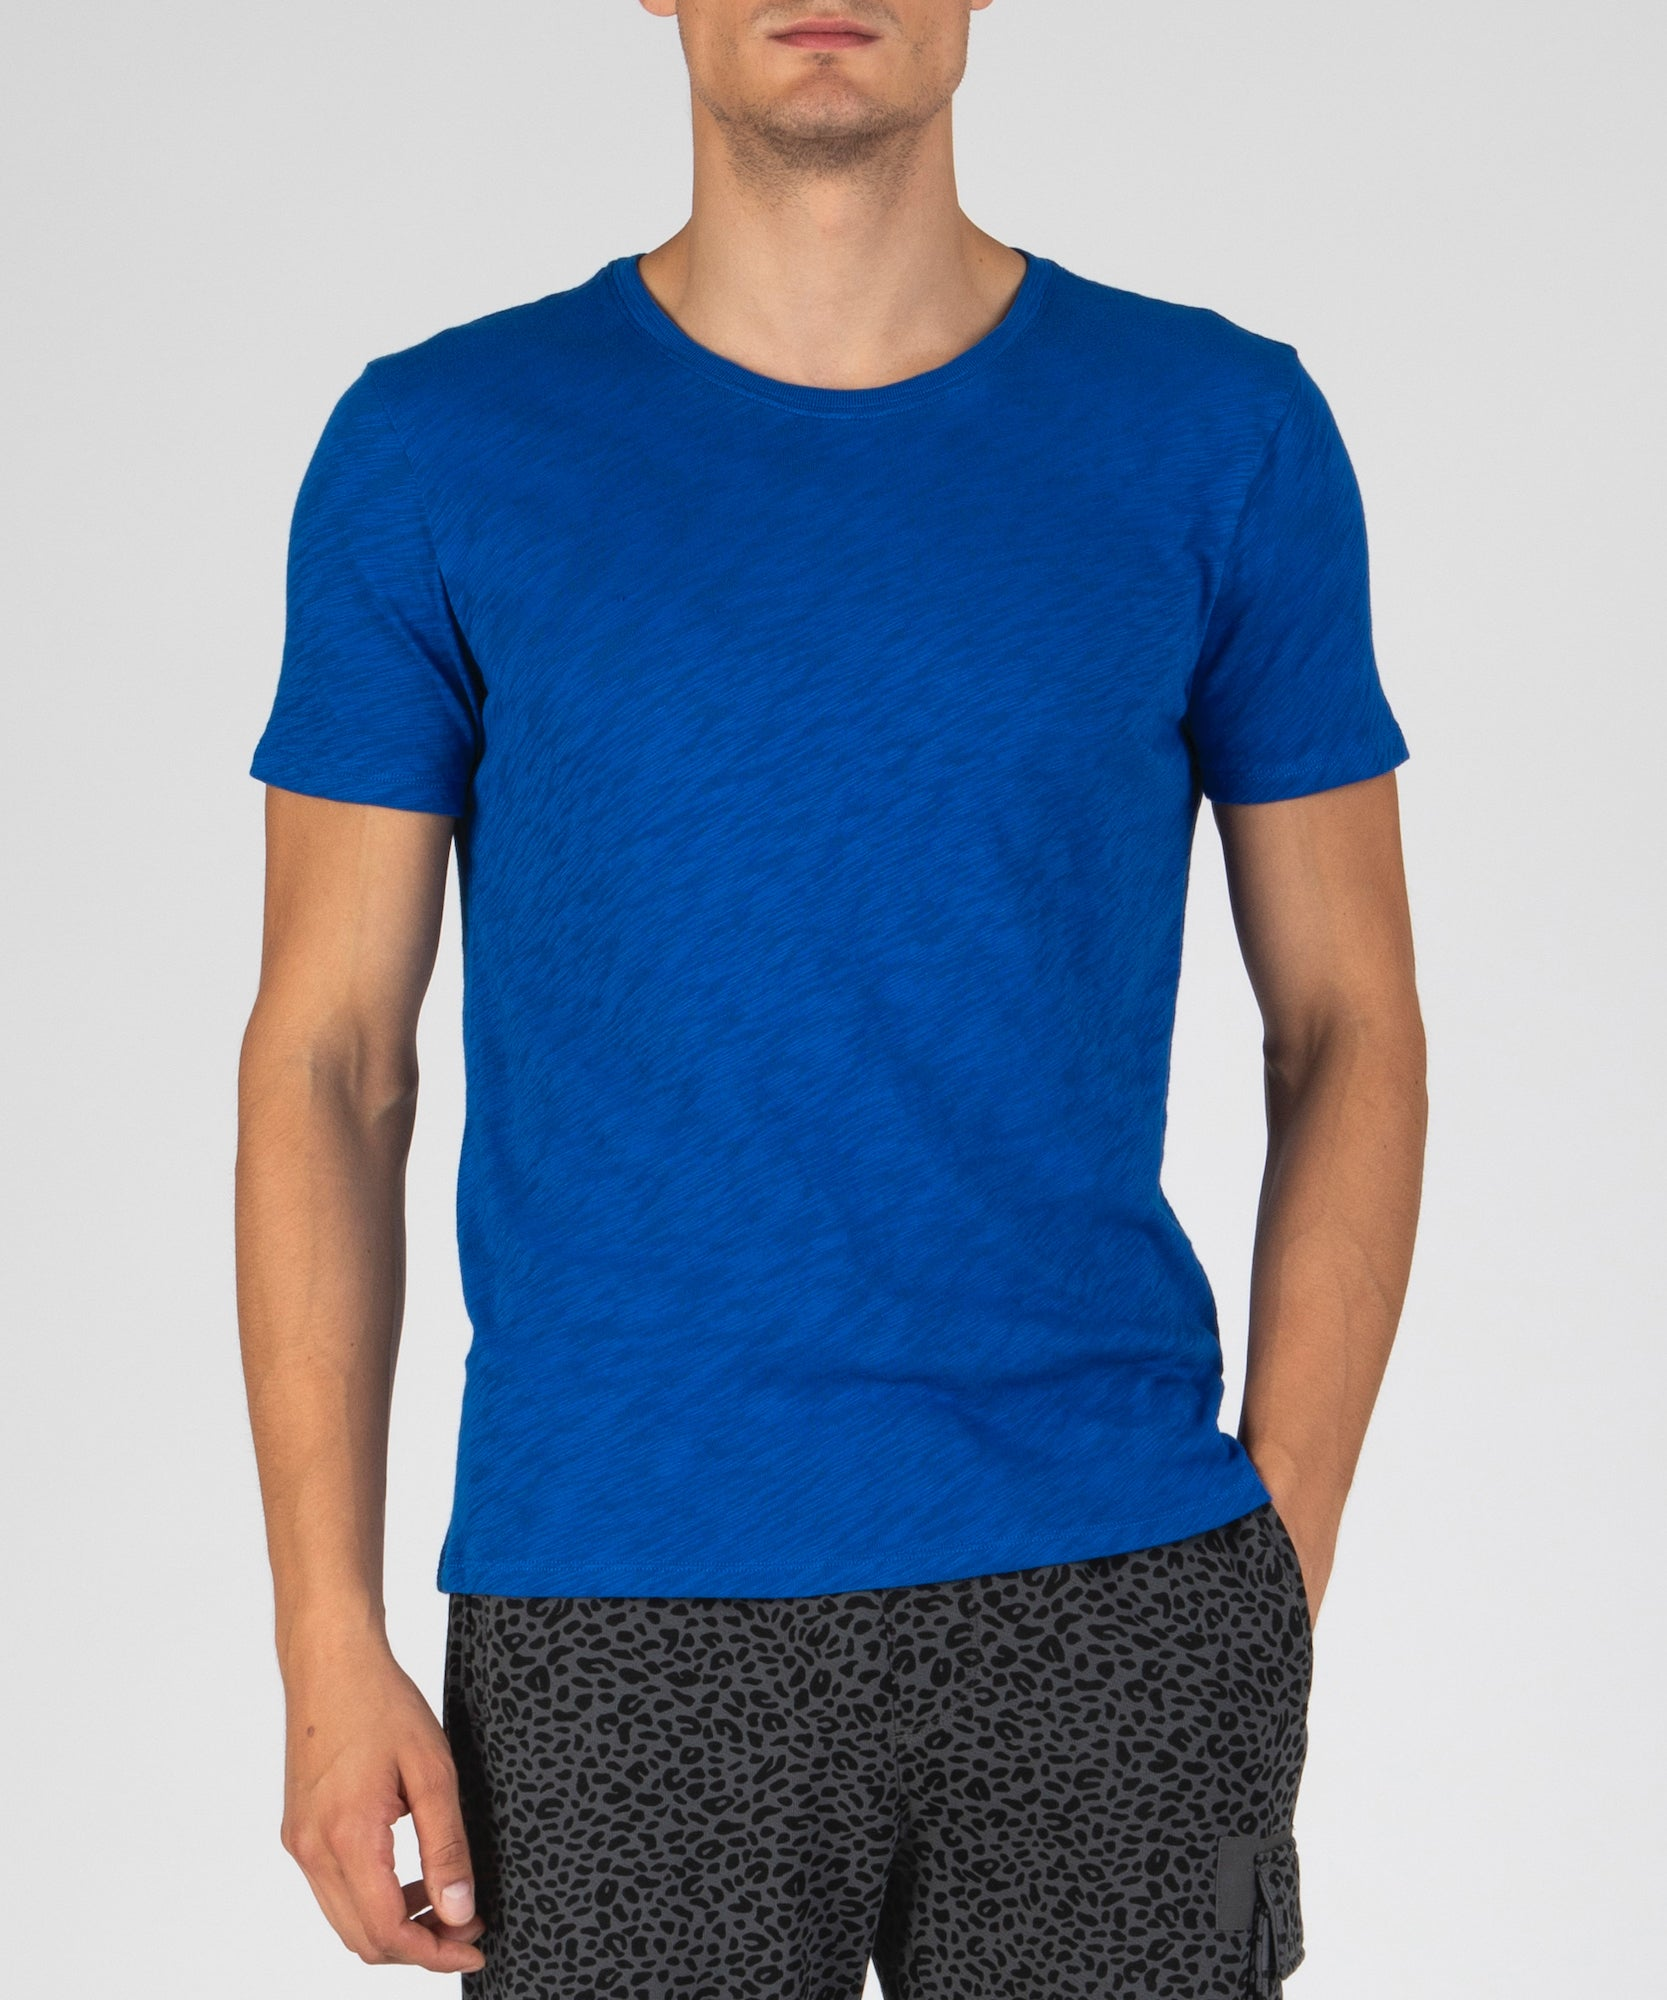 Lapis Blue Slub Jersey Crew Neck Tee - Men's Cotton Short Sleeve Tee by ATM Anthony Thomas Melillo